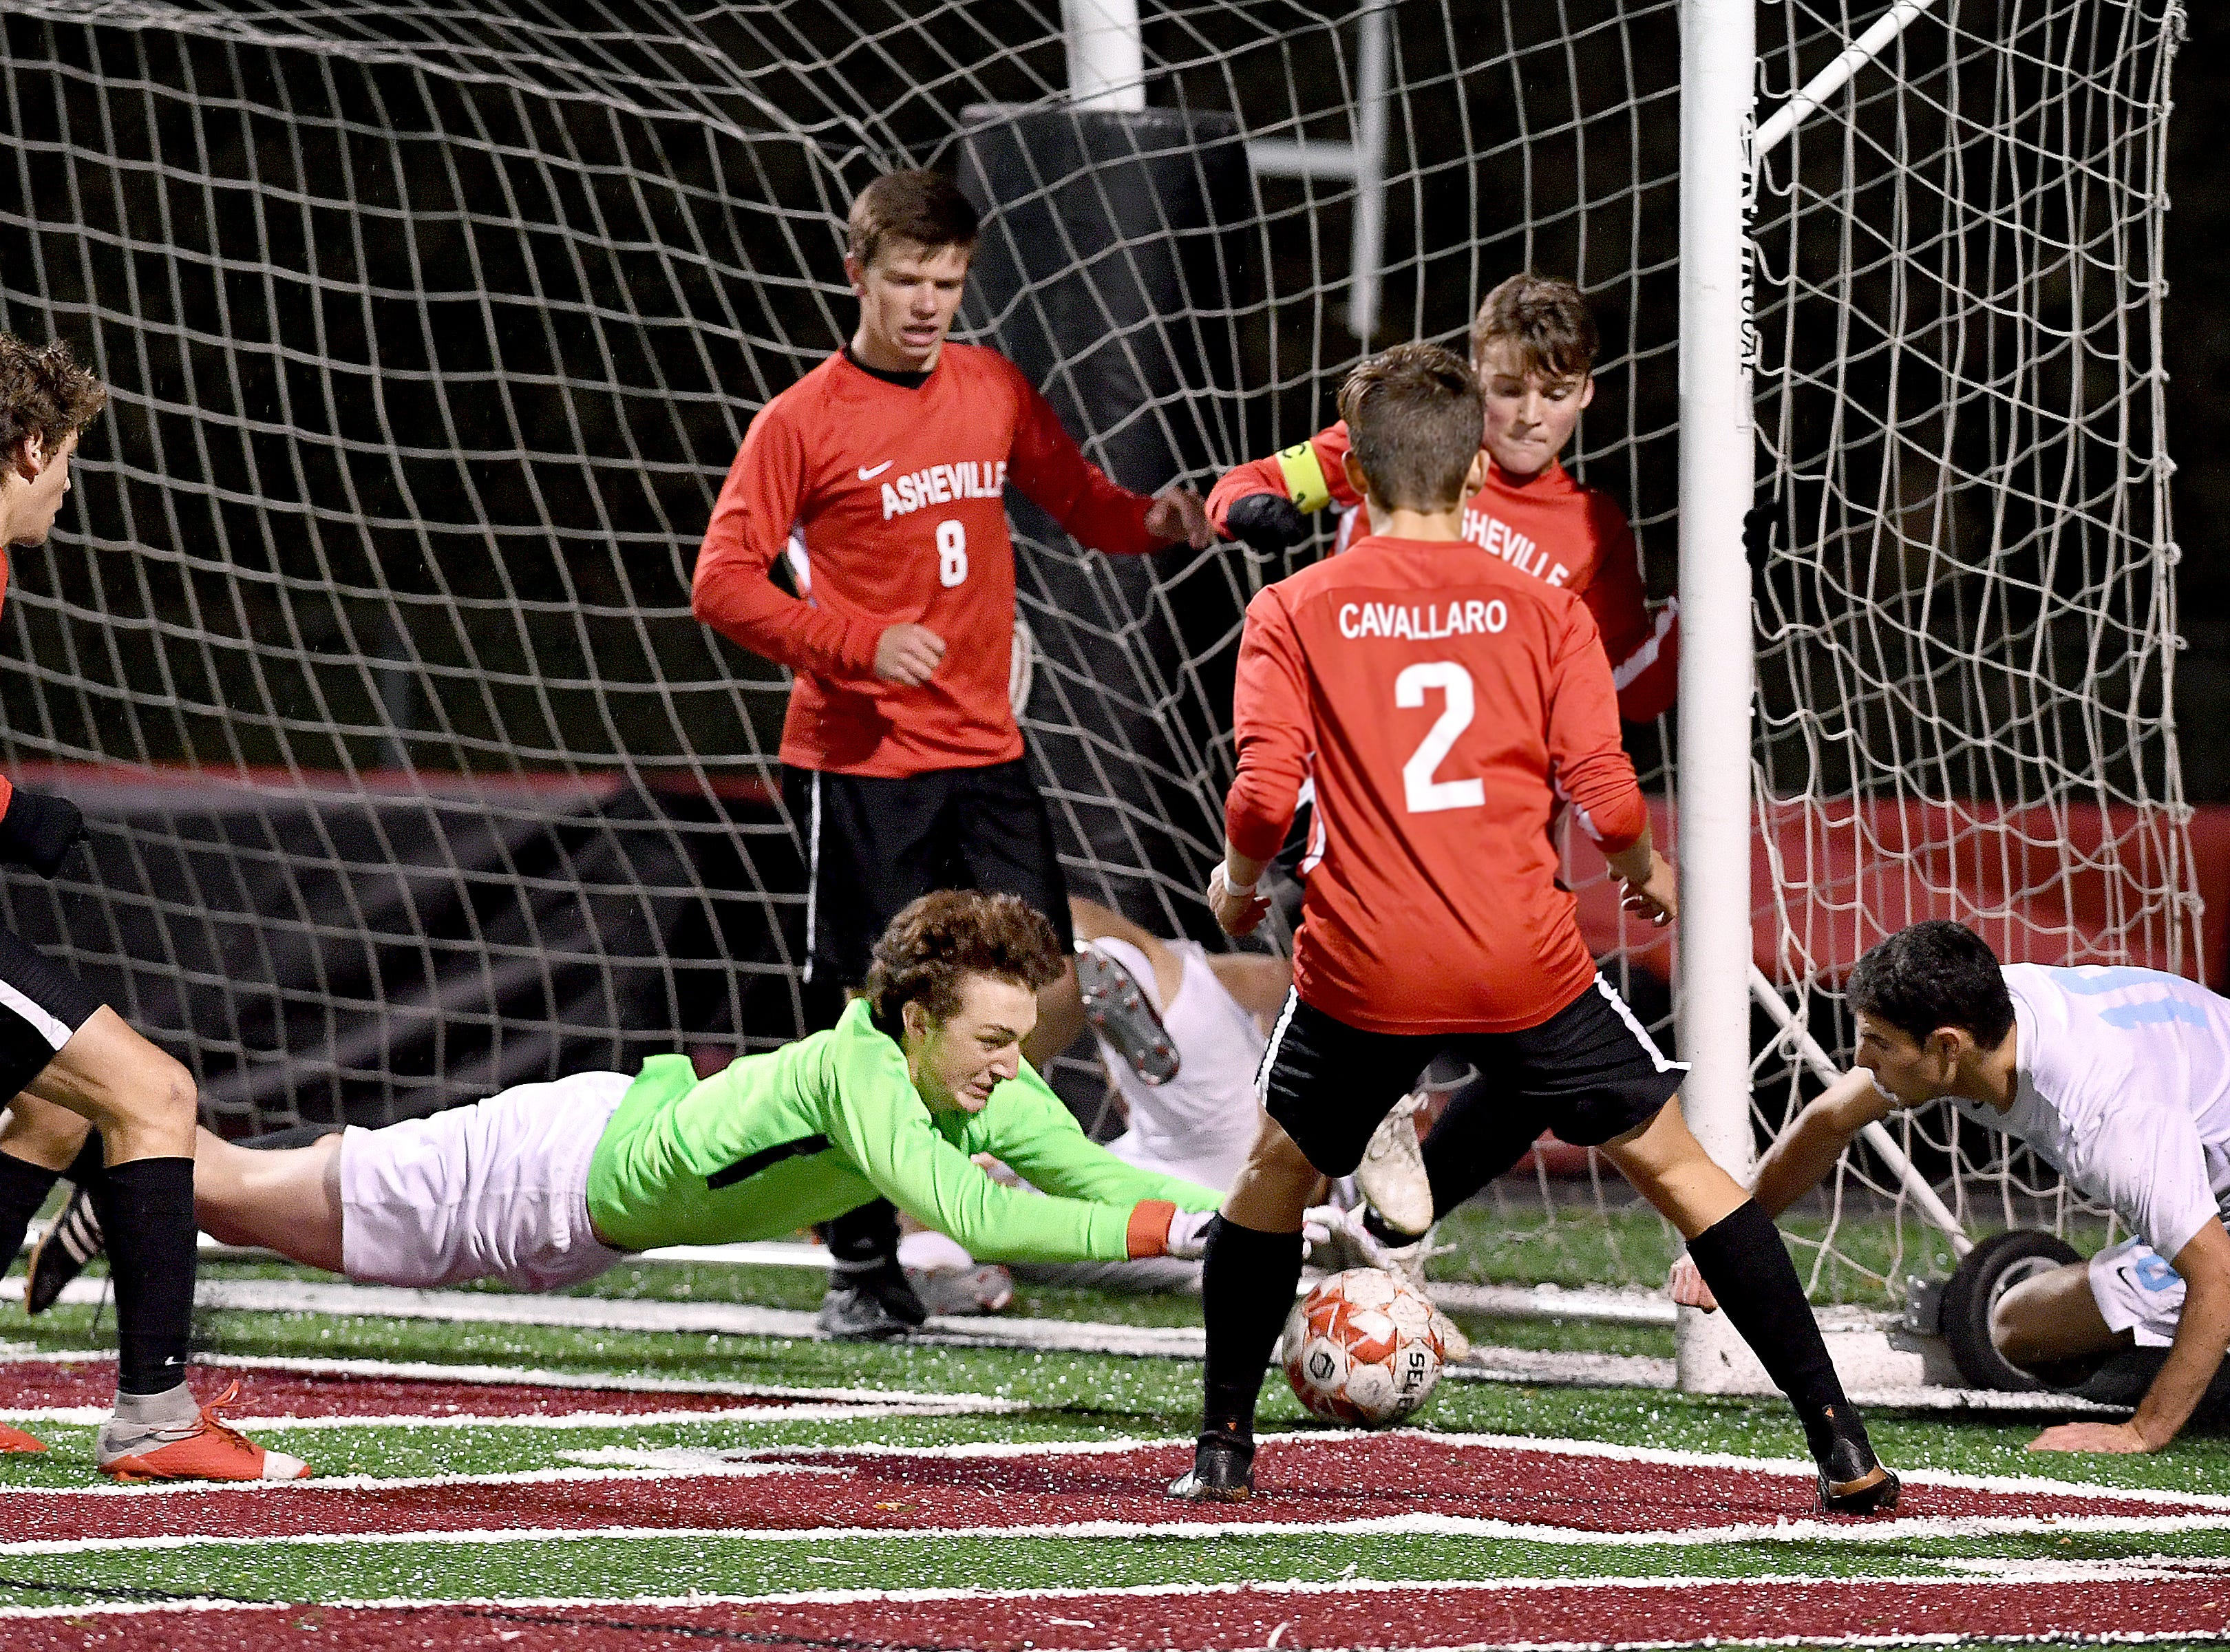 Asheville goalie Max Butterworth leaps onto the ball  during the Cougars' playoff game against Watauga at Asheville High School on Nov. 8, 2018. The Cougars defeated the Pioneers 1-0 to advance.